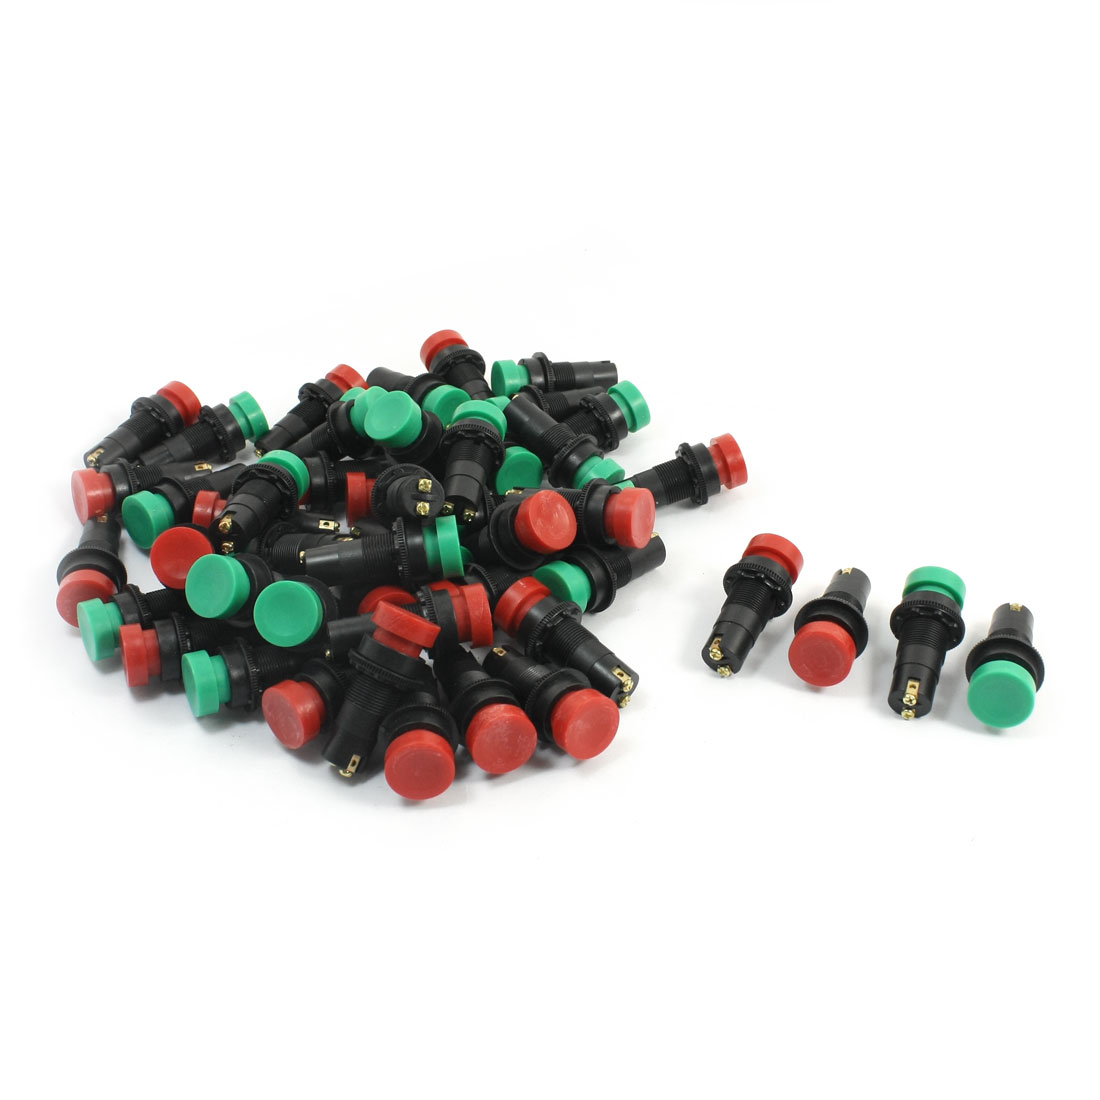 50Pcs DC 24V 2A SPST Round Head Black Base Panel Mounting 2 Screw Terminals Momentary Push Button Switches